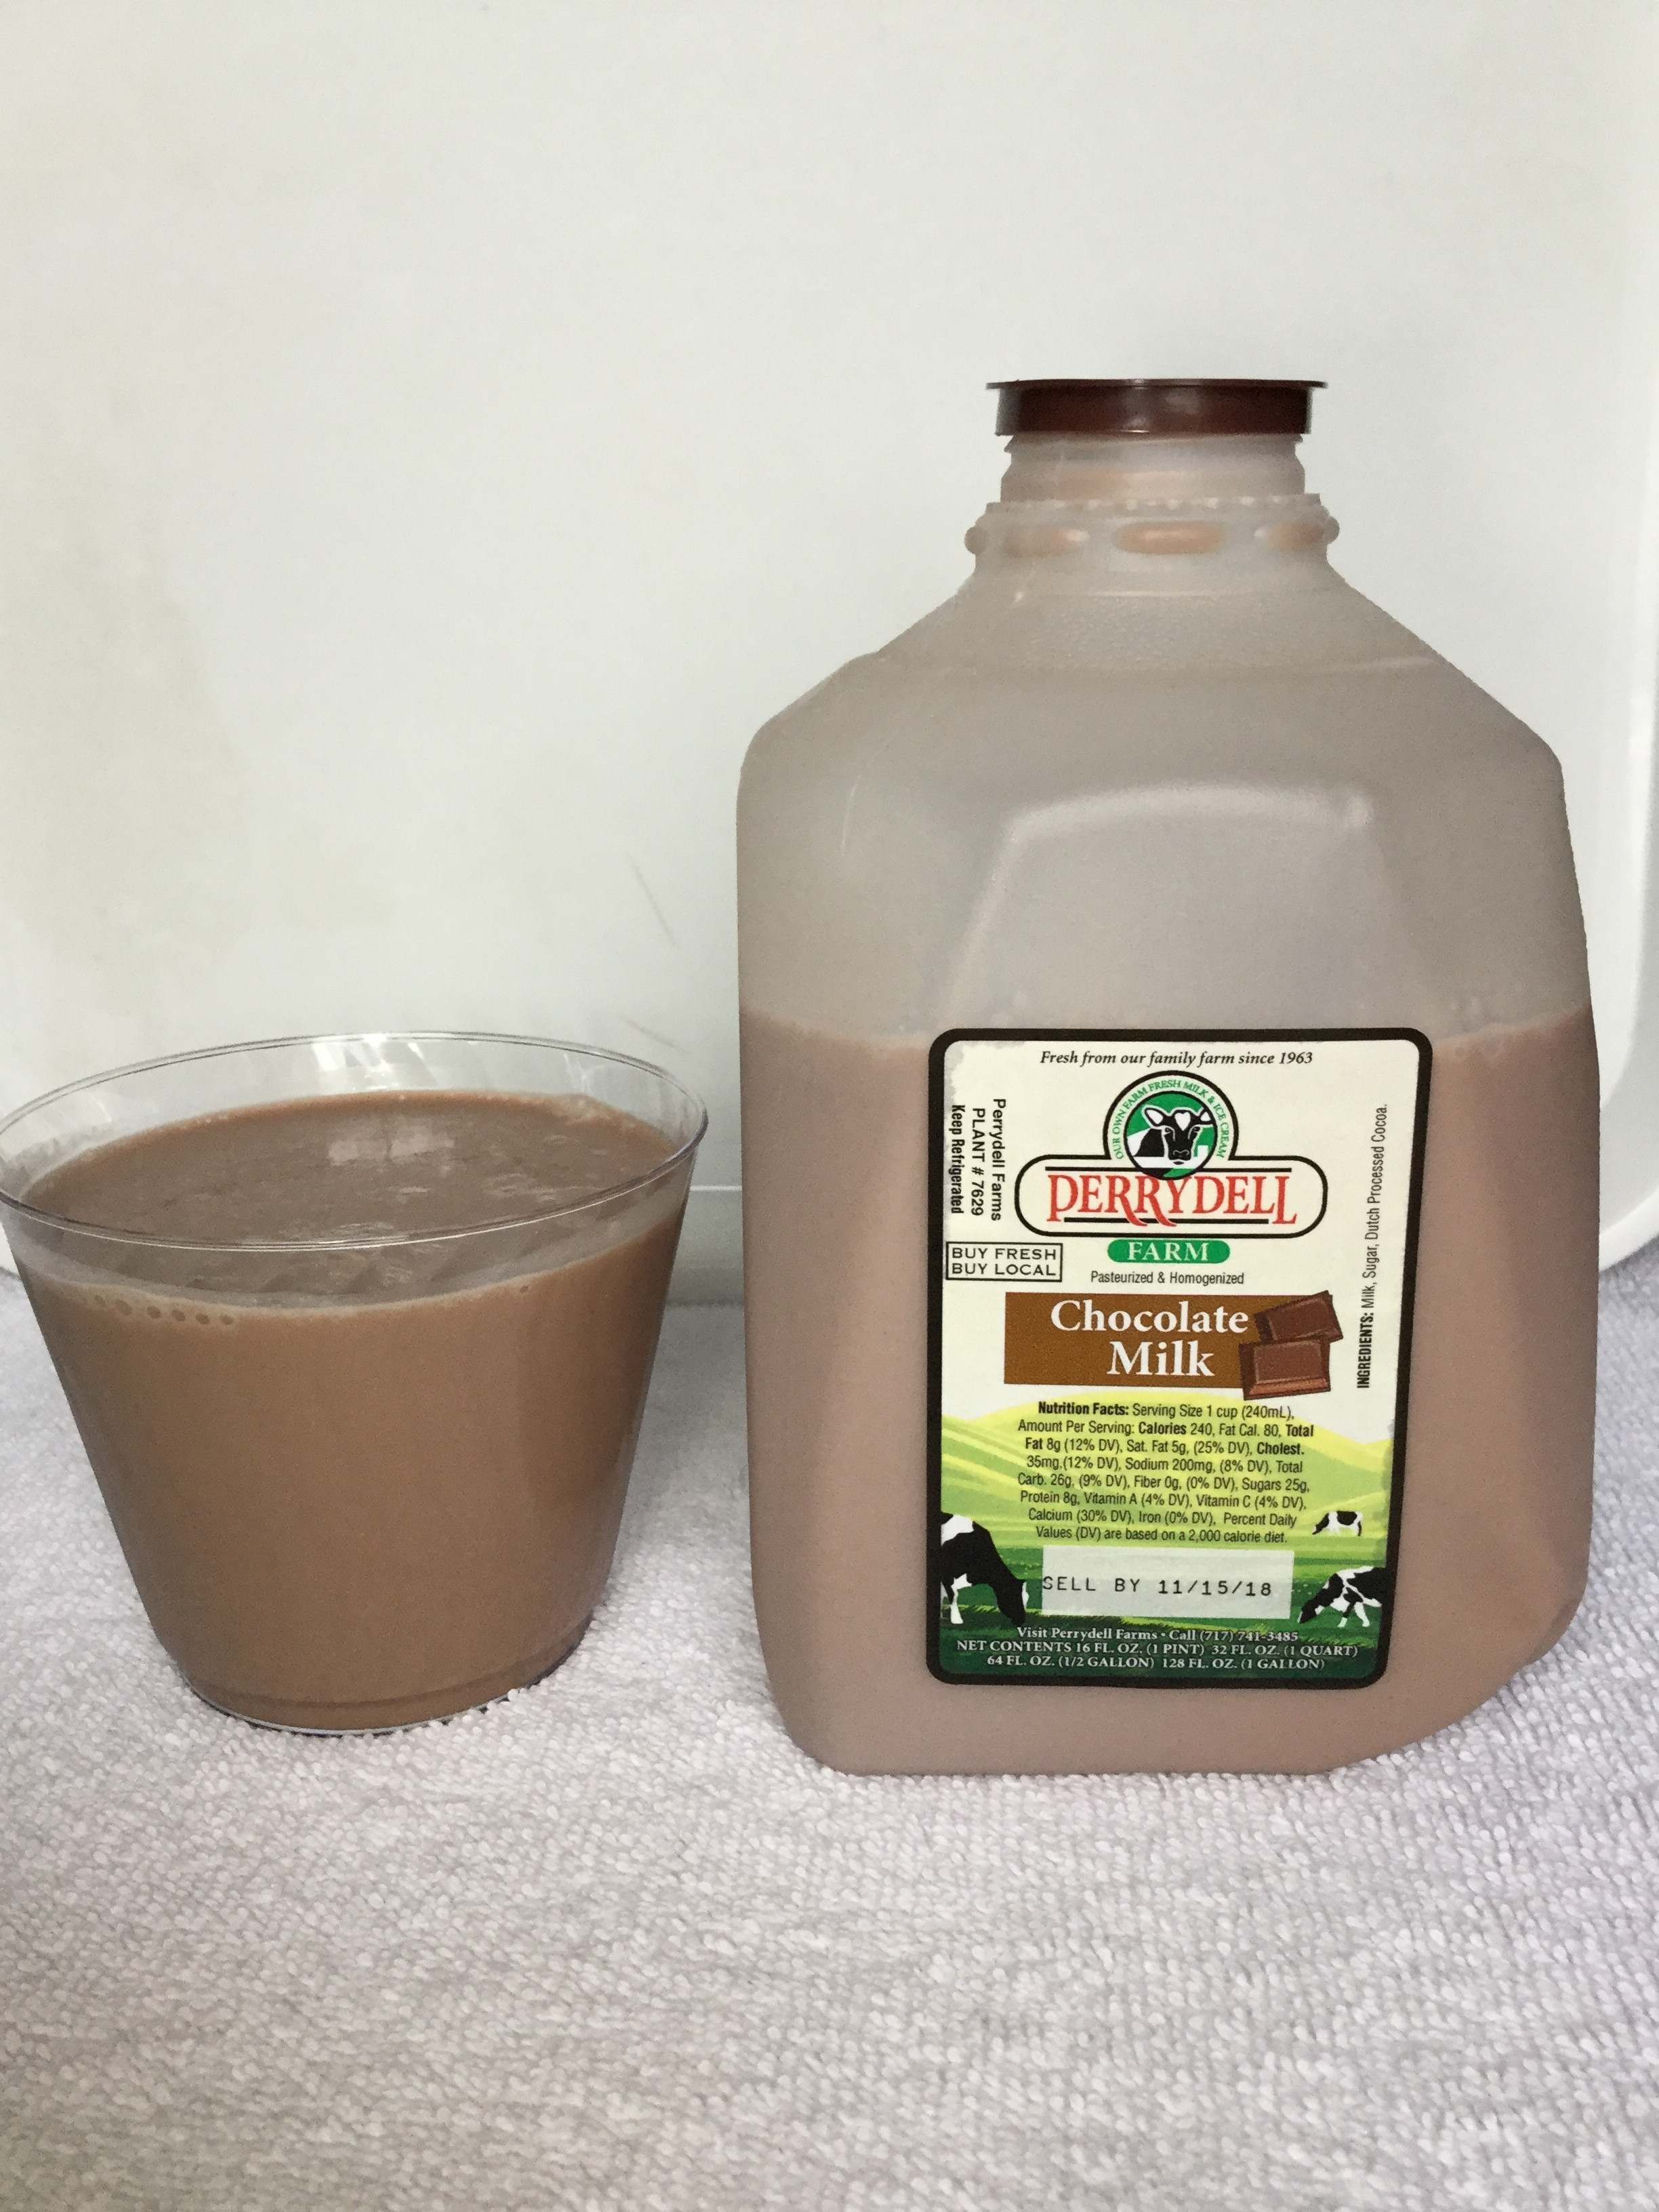 Perrydell Farm Chocolate Milk Cup